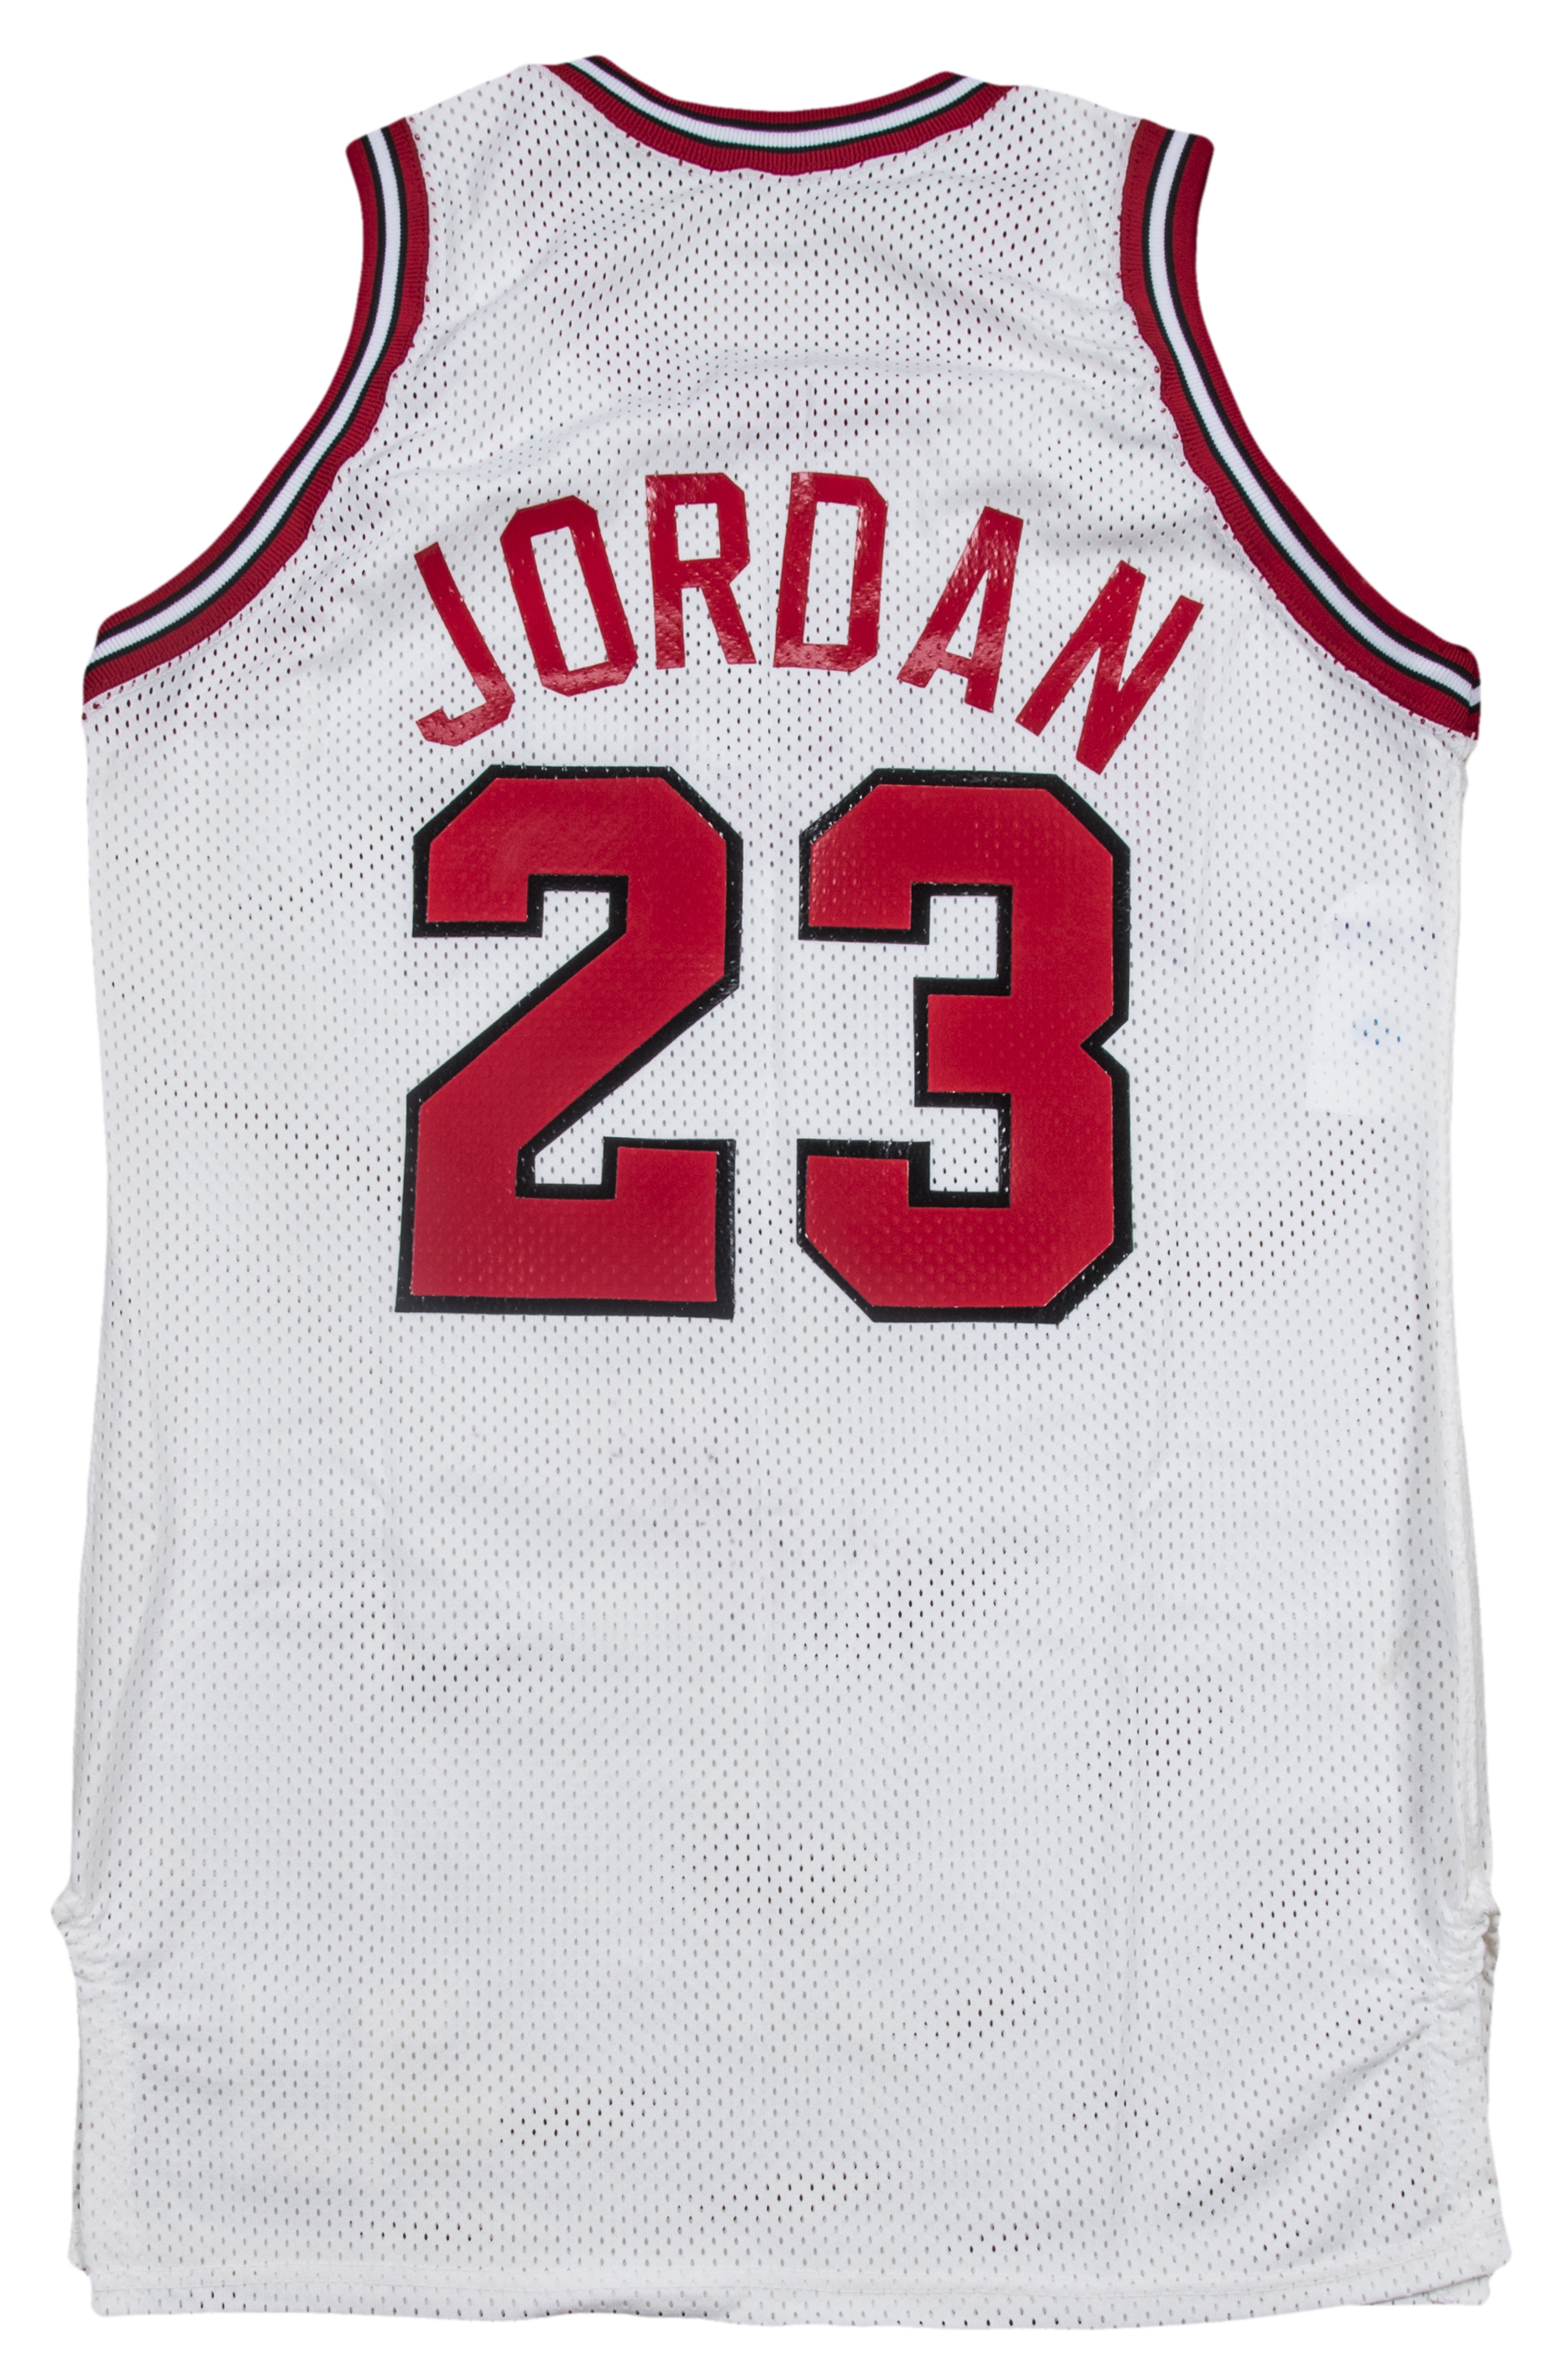 4c4d8f08a21878 1988-89 Michael Jordan Game Used   Signed Chicago Bulls Home Jersey -  Earliest Known. Prev Next